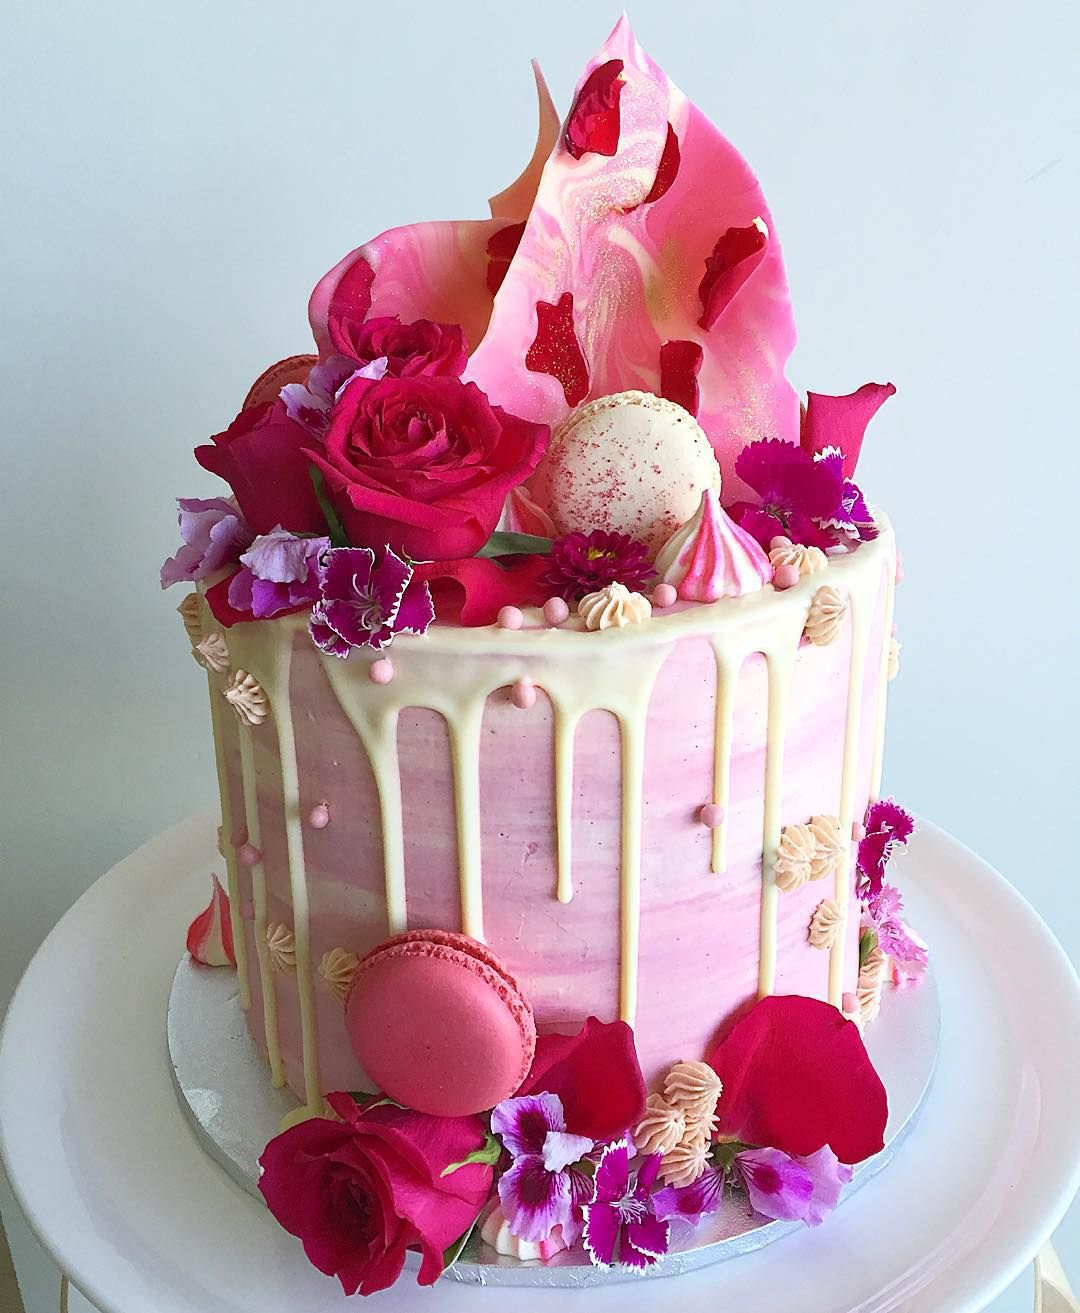 Swell Red Velvet Cake With Pink Vanilla Buttercream And Salted Caramel Funny Birthday Cards Online Chimdamsfinfo